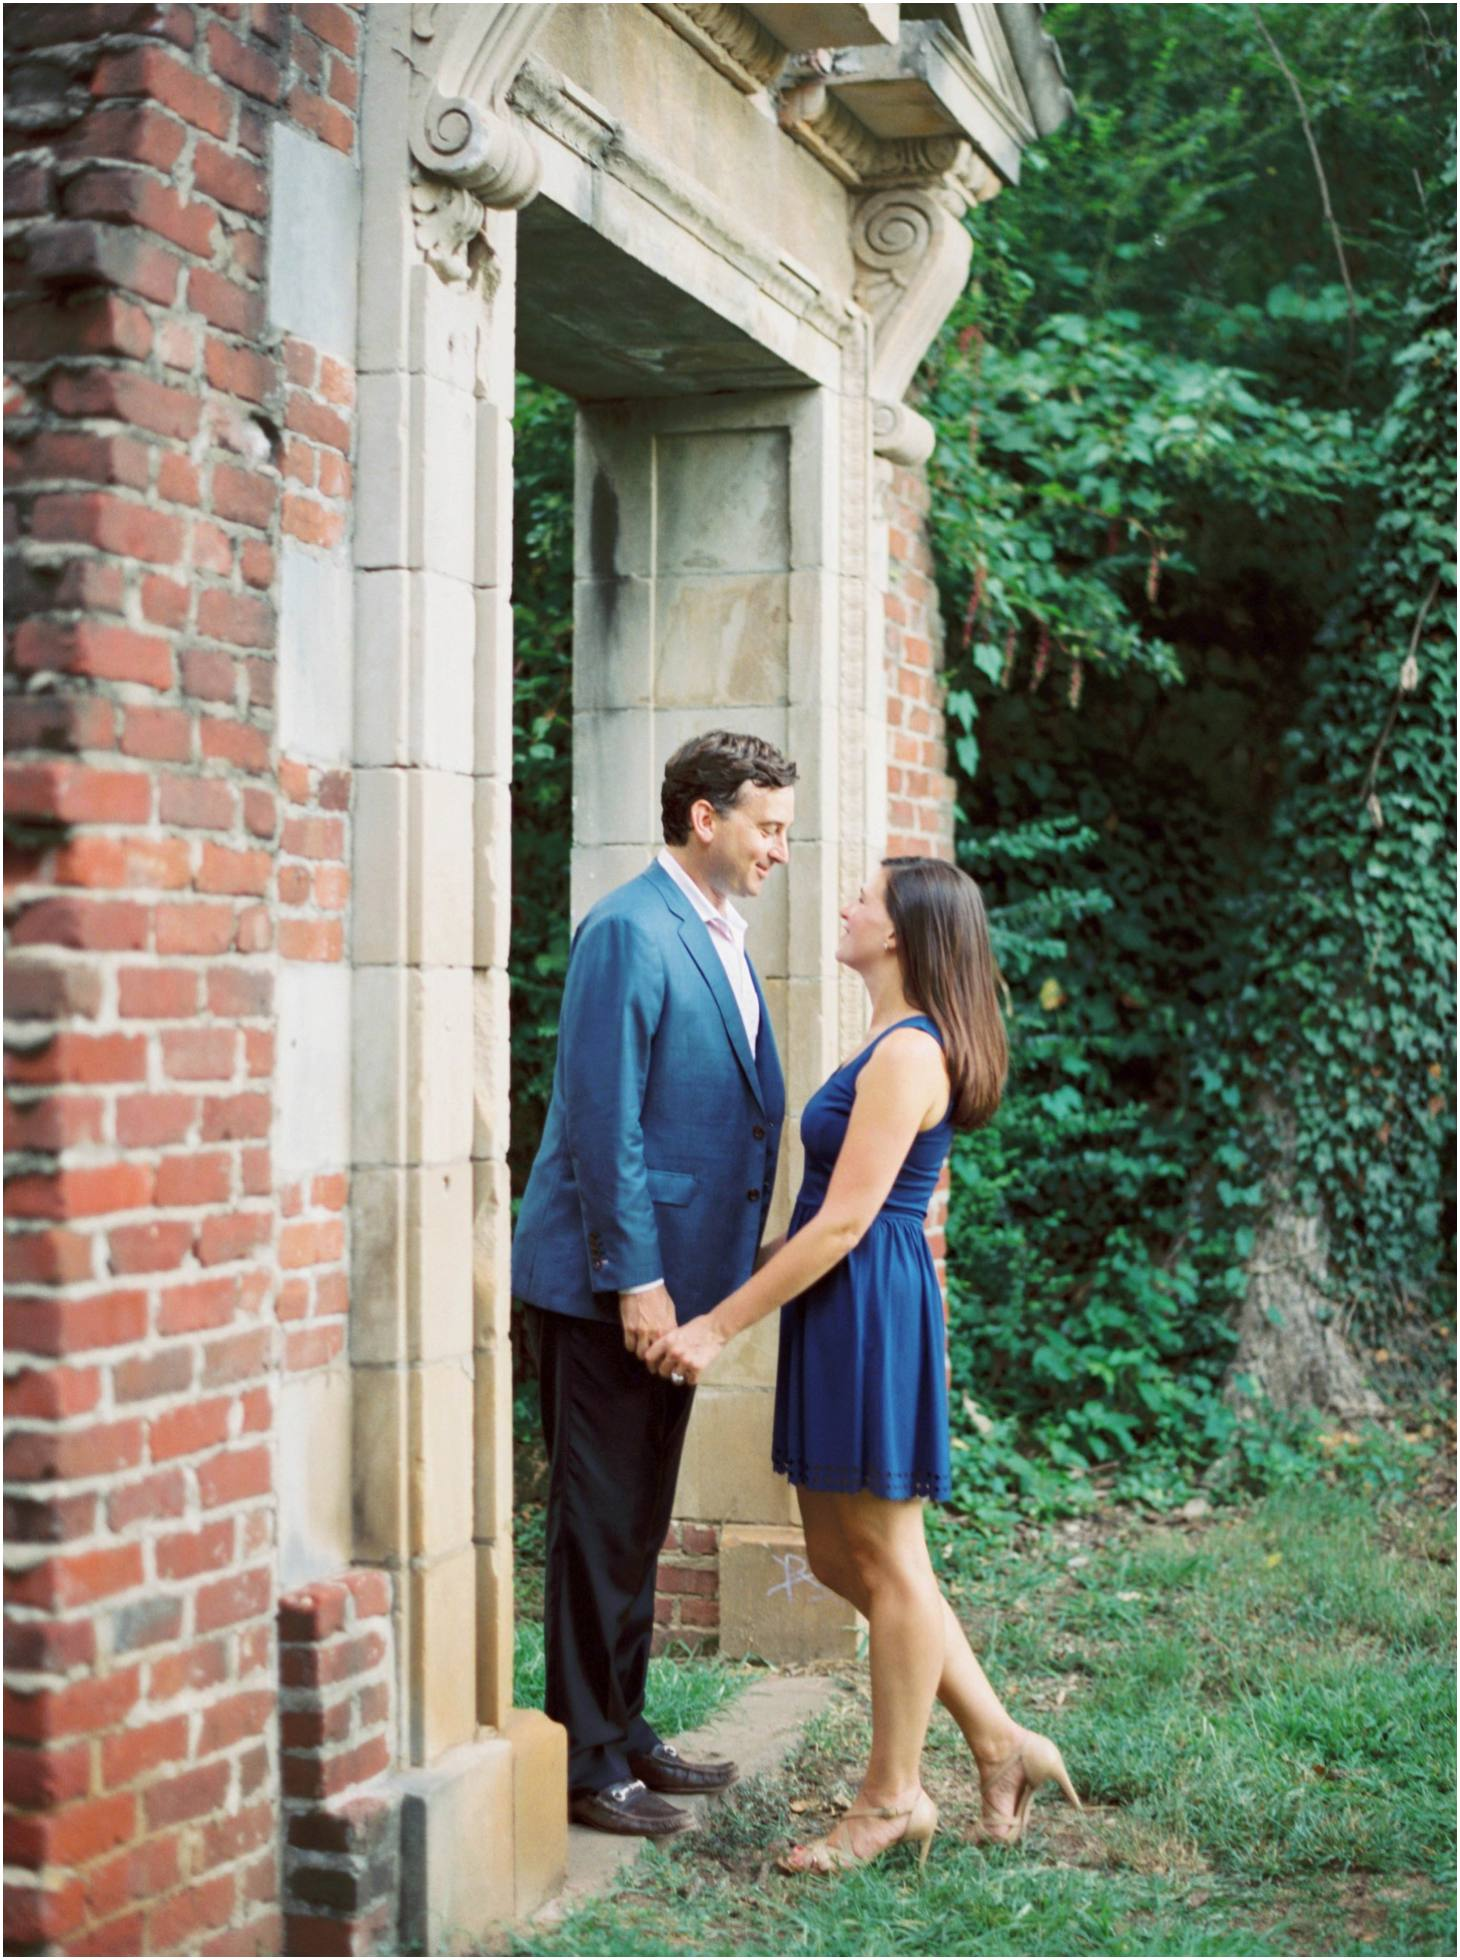 kim-stockwell-photography-fine-art-film-engagements-charlottesville-virginia-meghan-and-taylor_0842